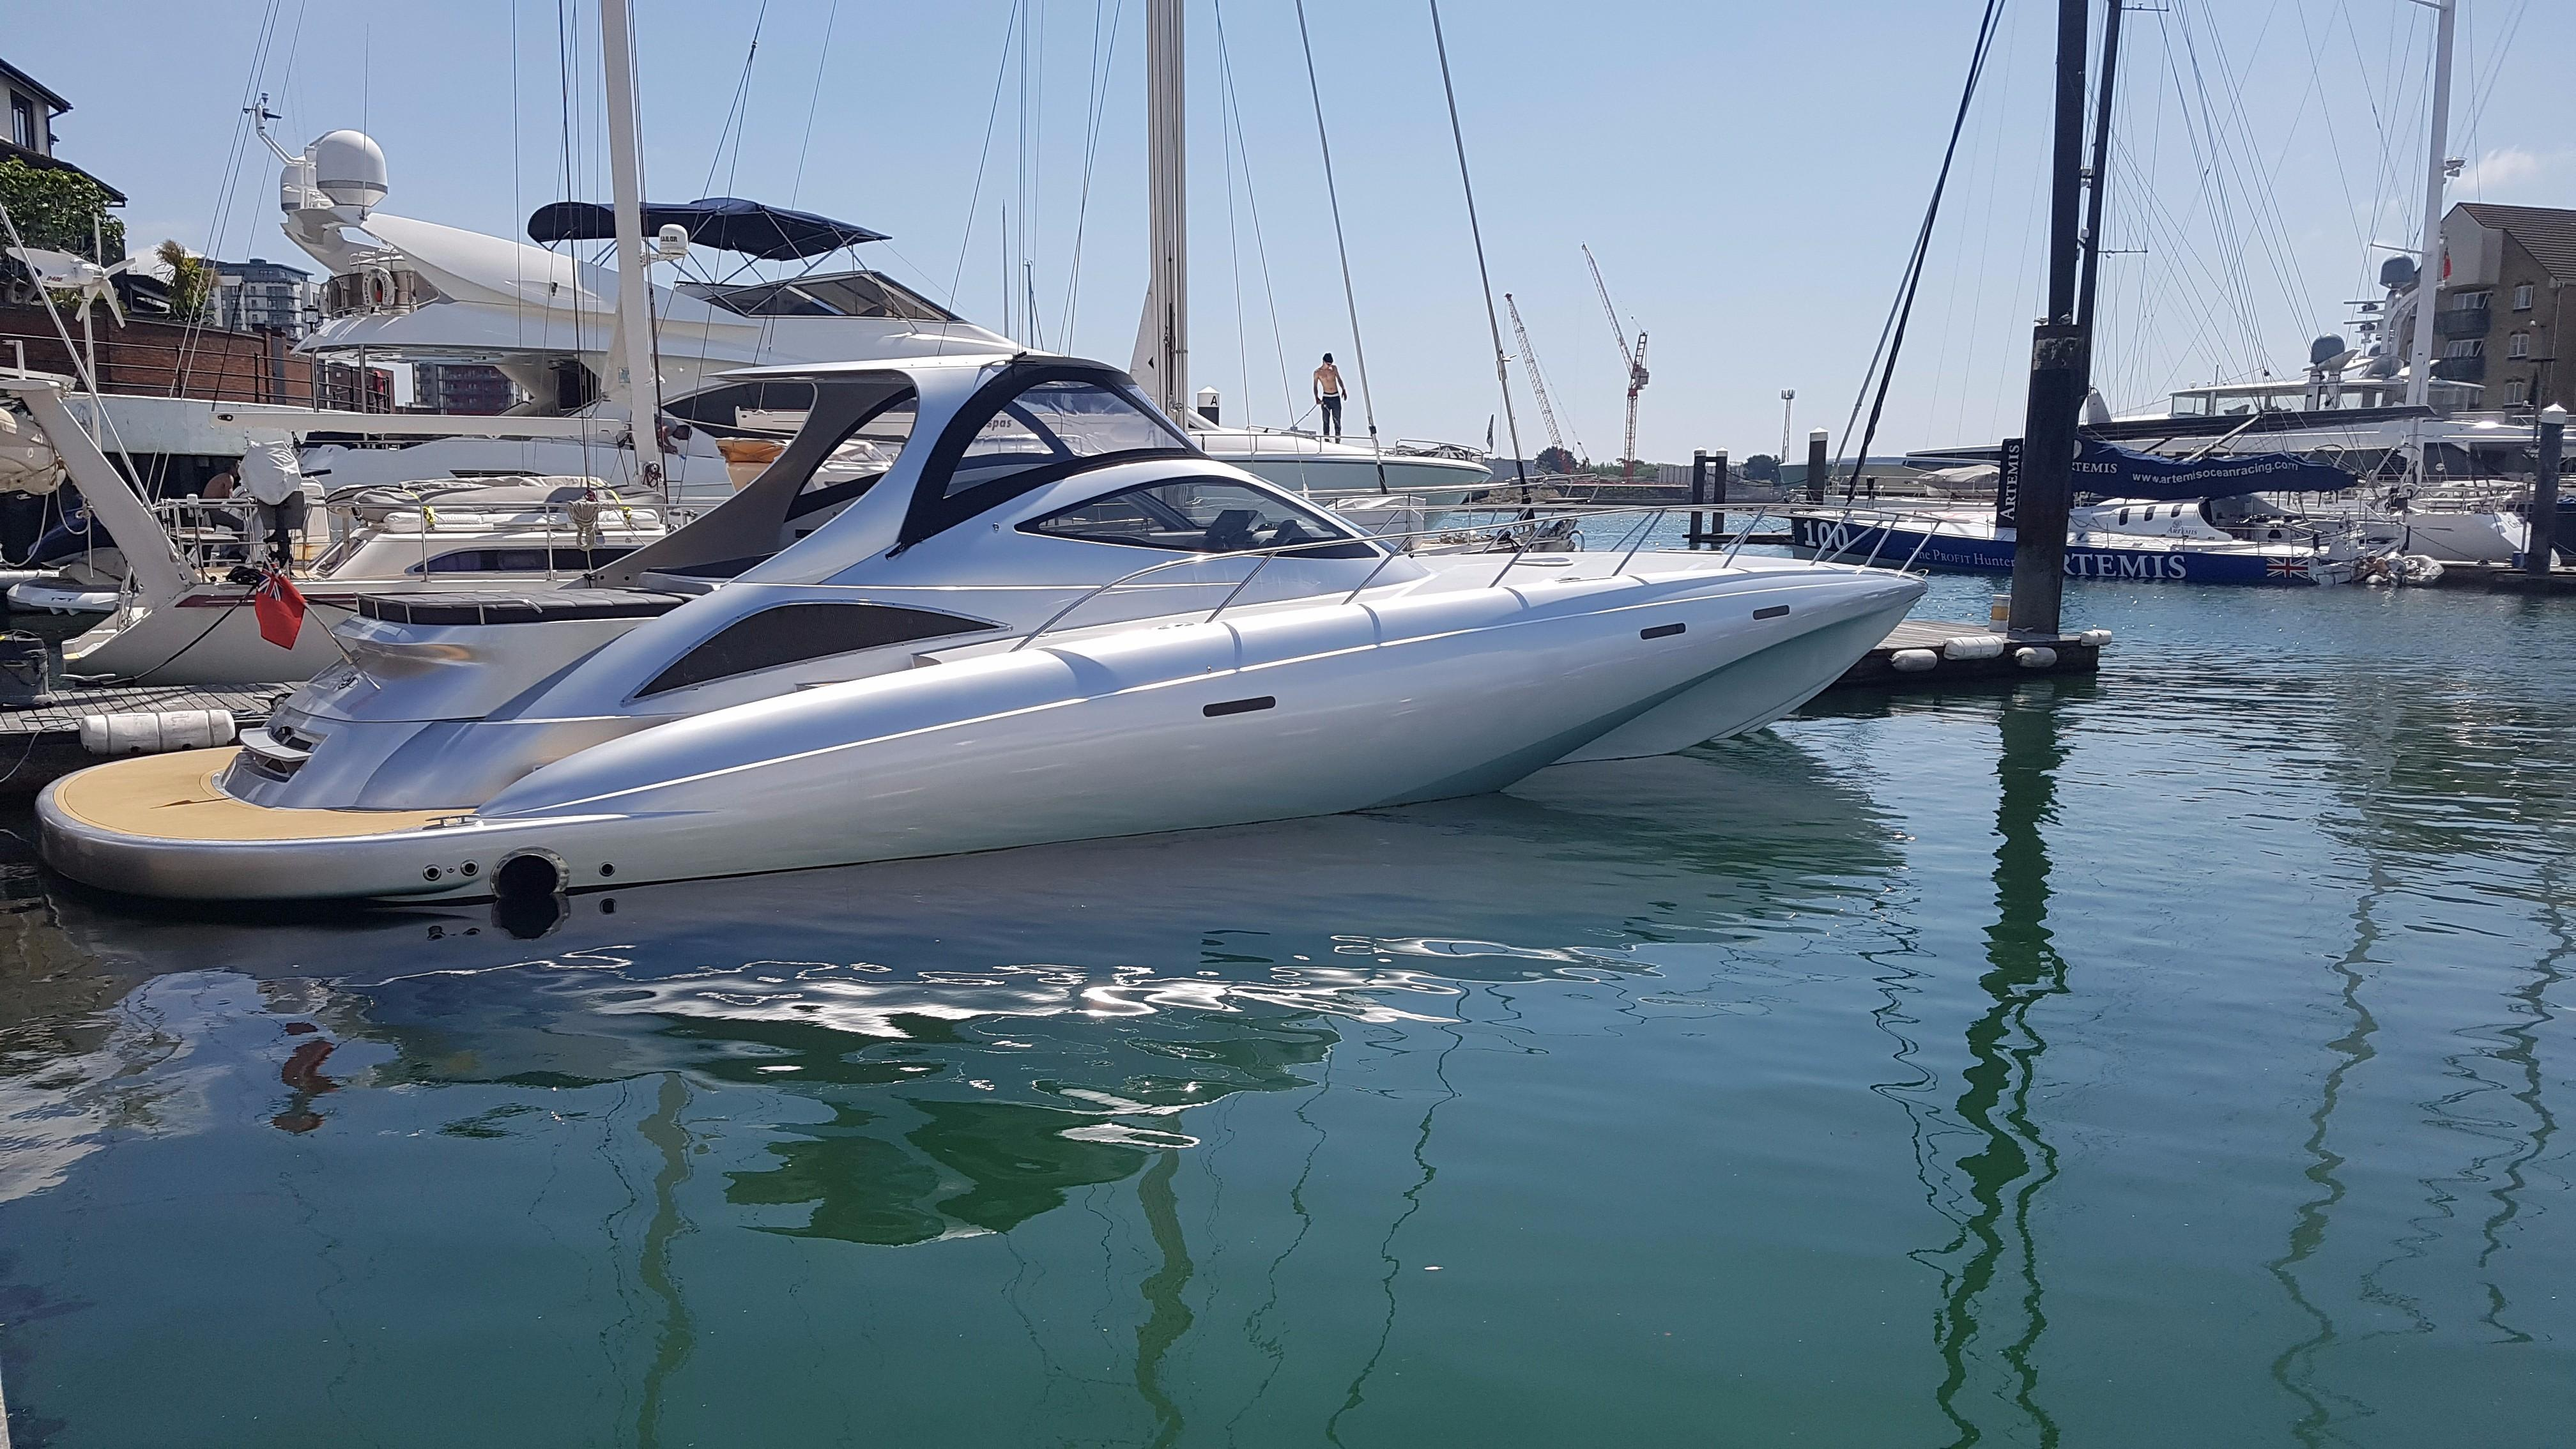 2007 50 85 ft Yacht For Sale | Allied Marine